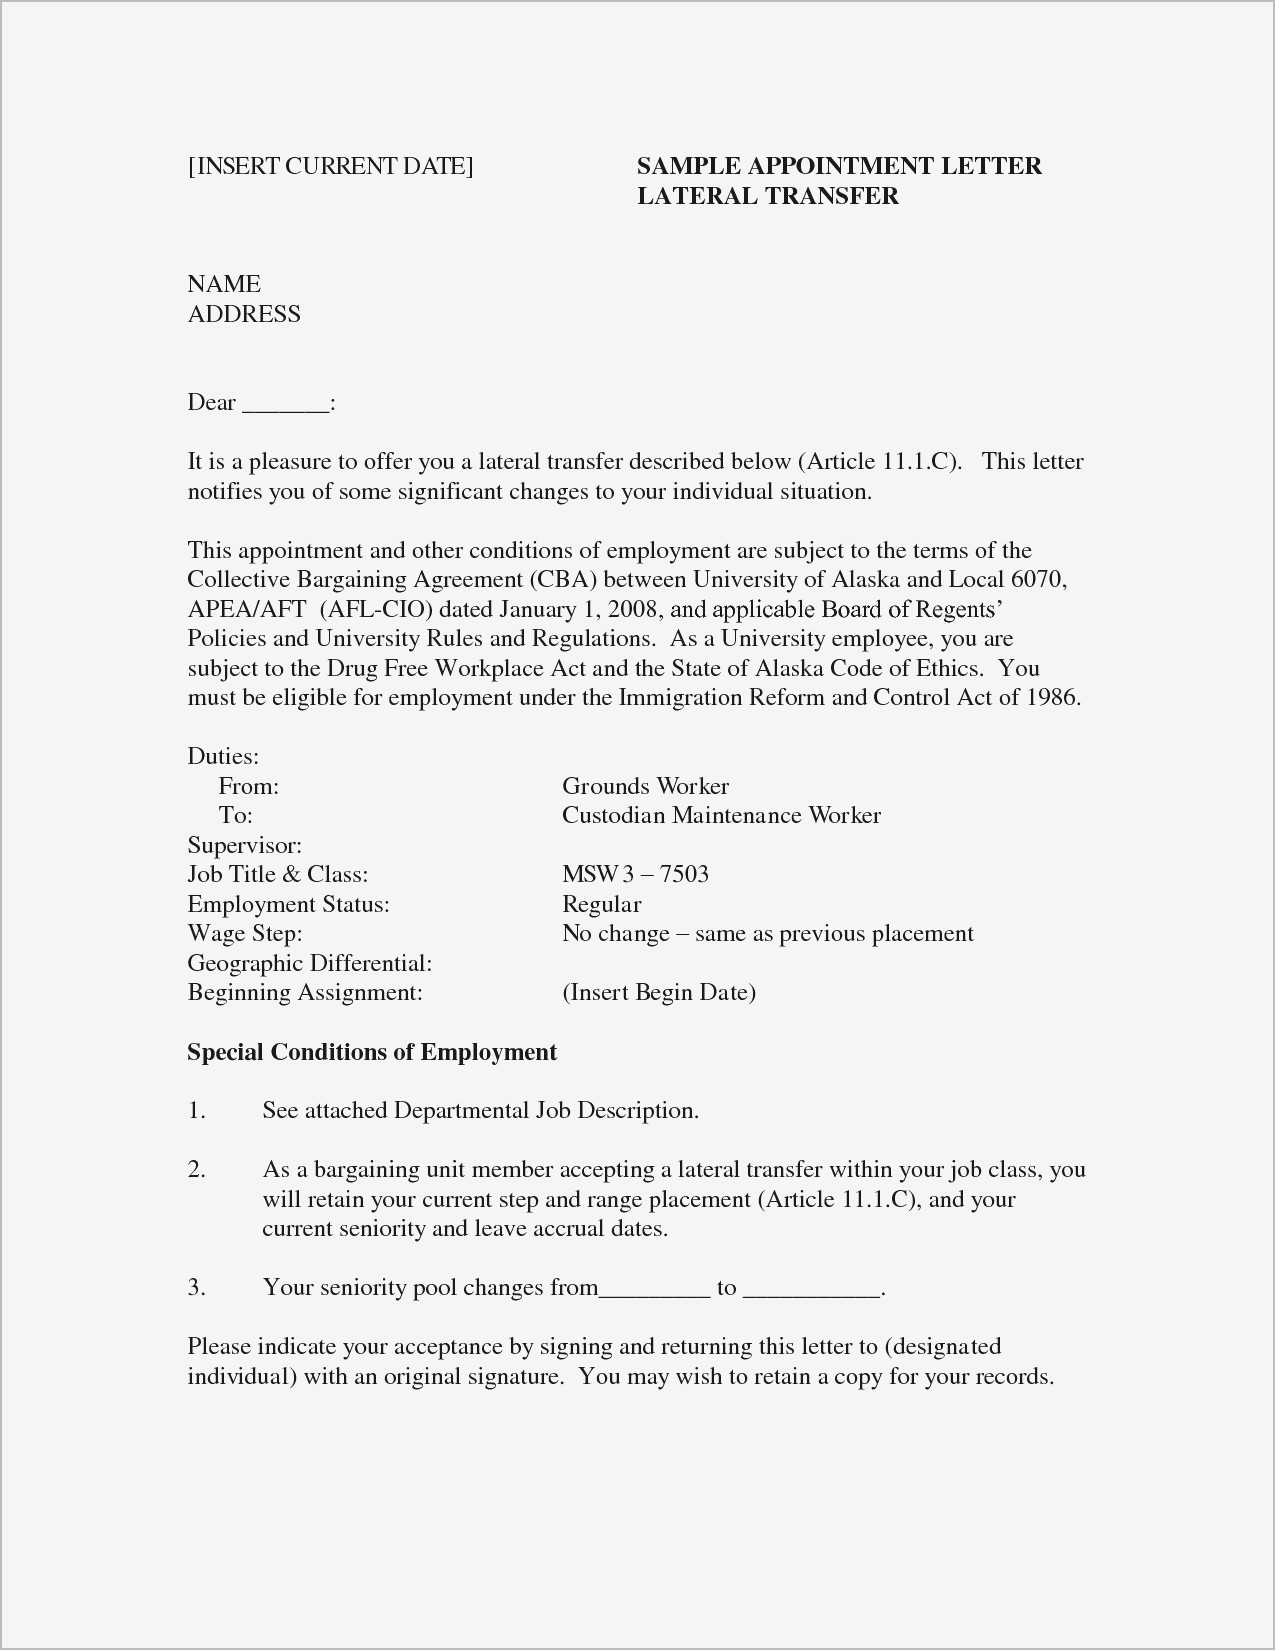 Offer Letter Template - Job Fer Letters From Employer New Job Fer Letter Template Us Copy